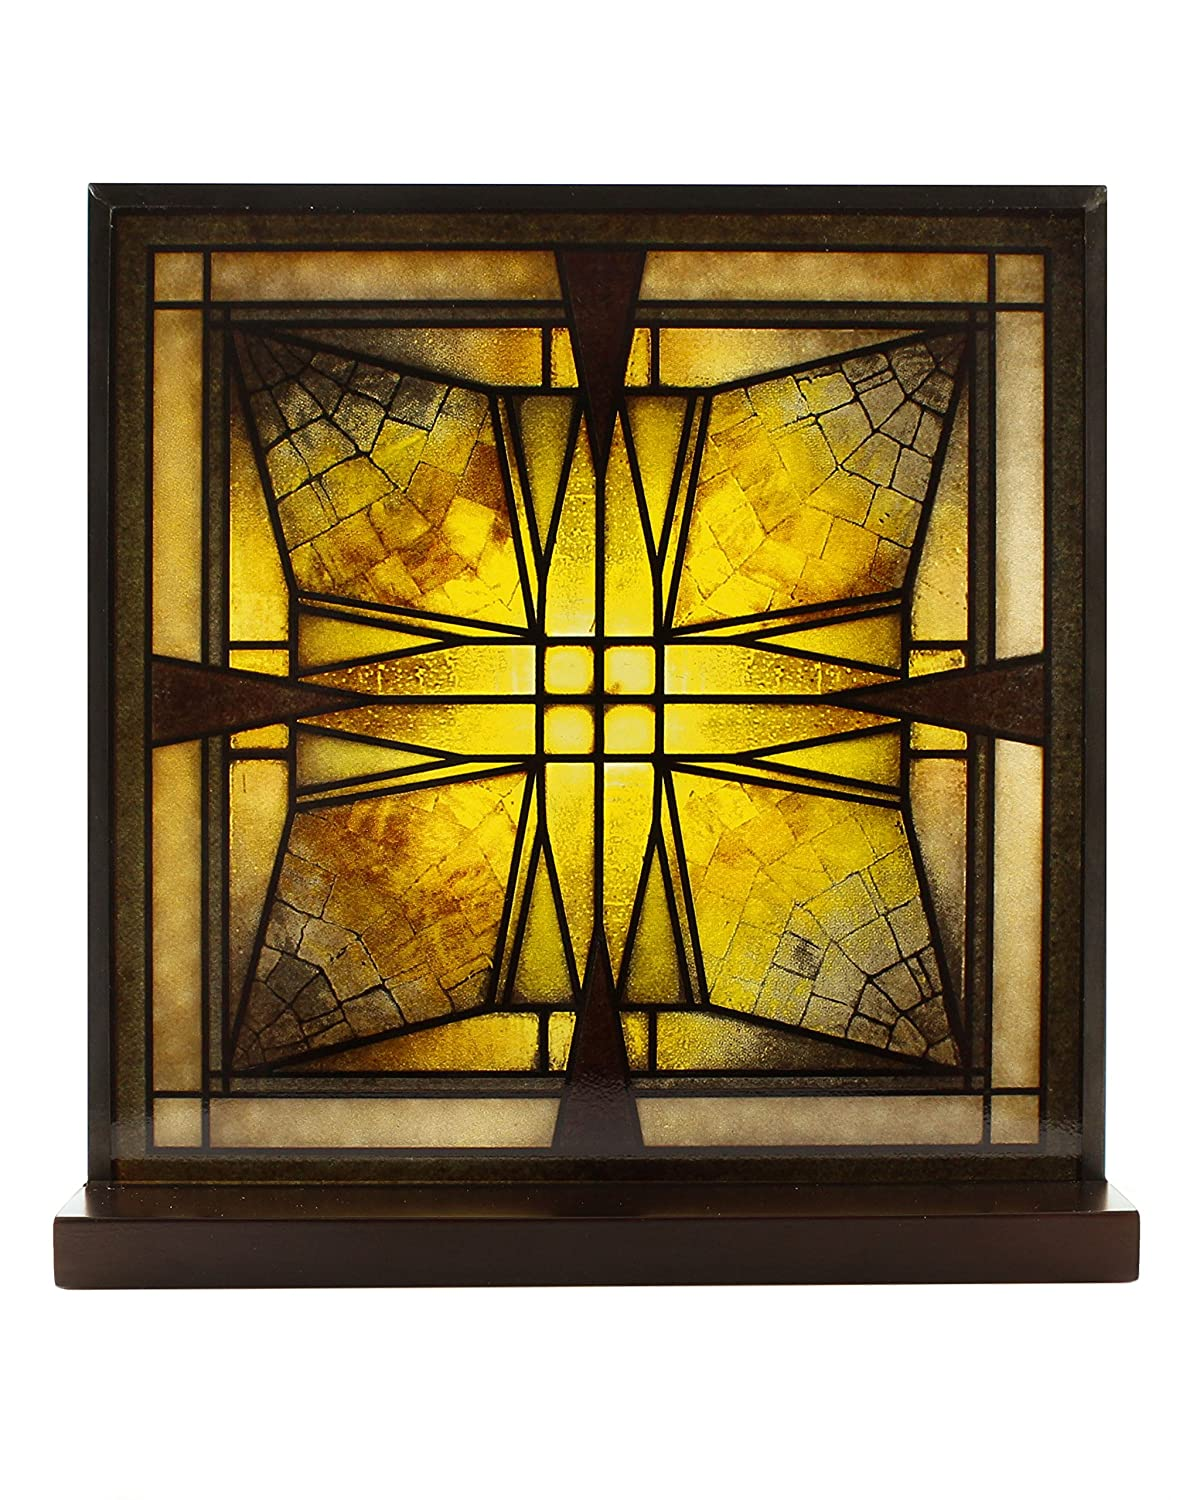 Frank Lloyd Wright Thomas Entry Ceiling Light Stained Glass YTC Summit